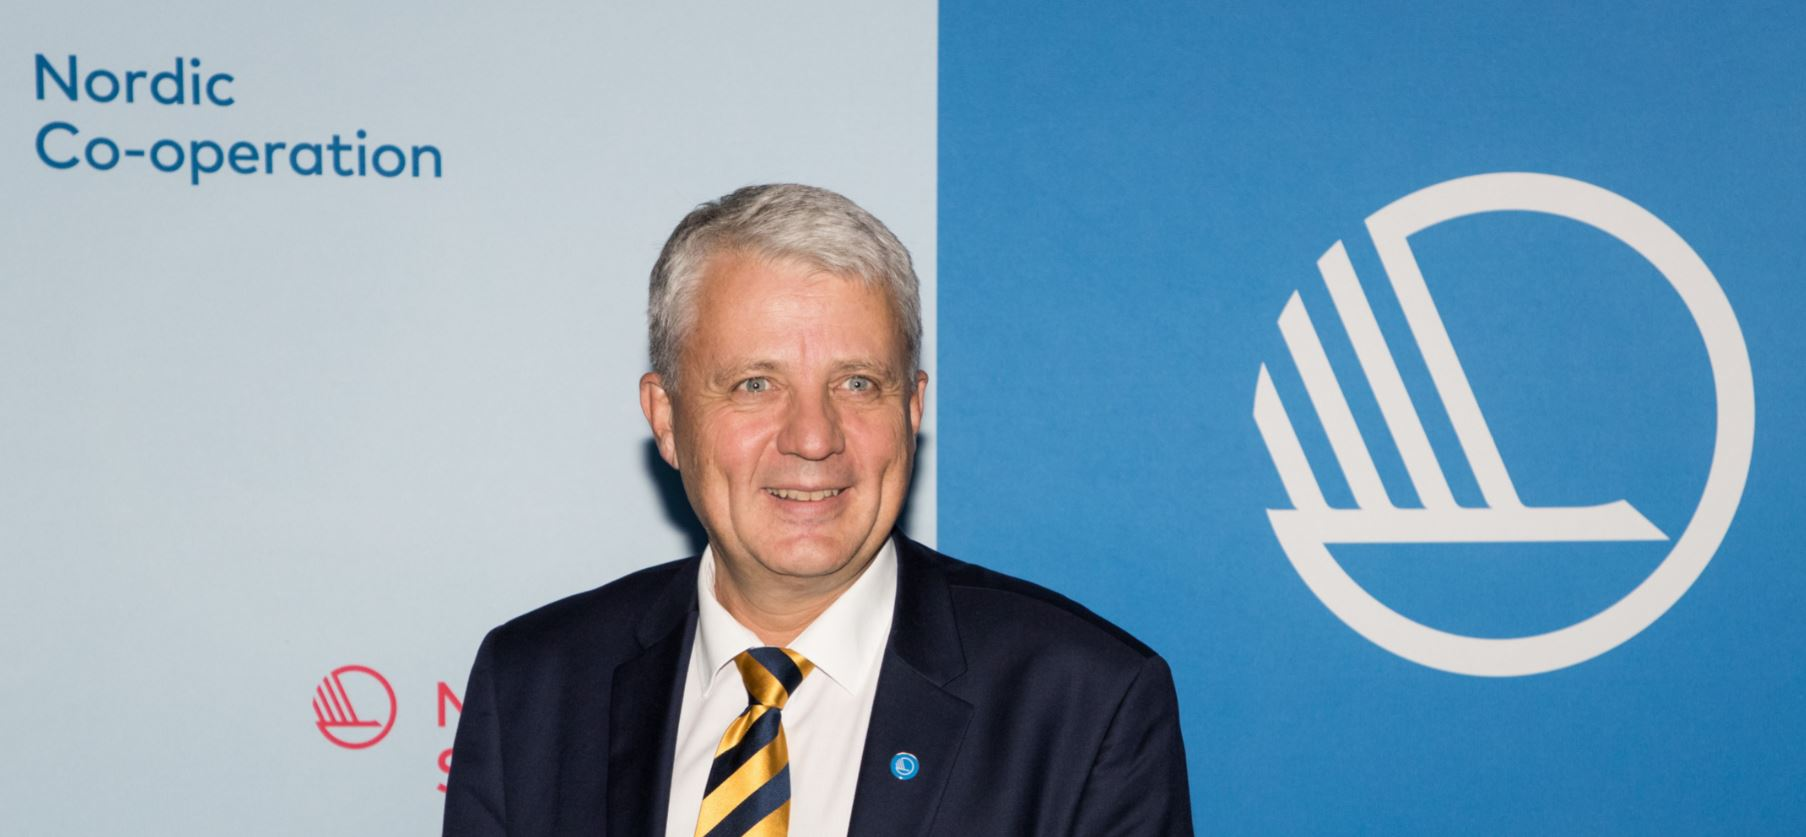 Outgoing Secretary General: keep the Nordic focus